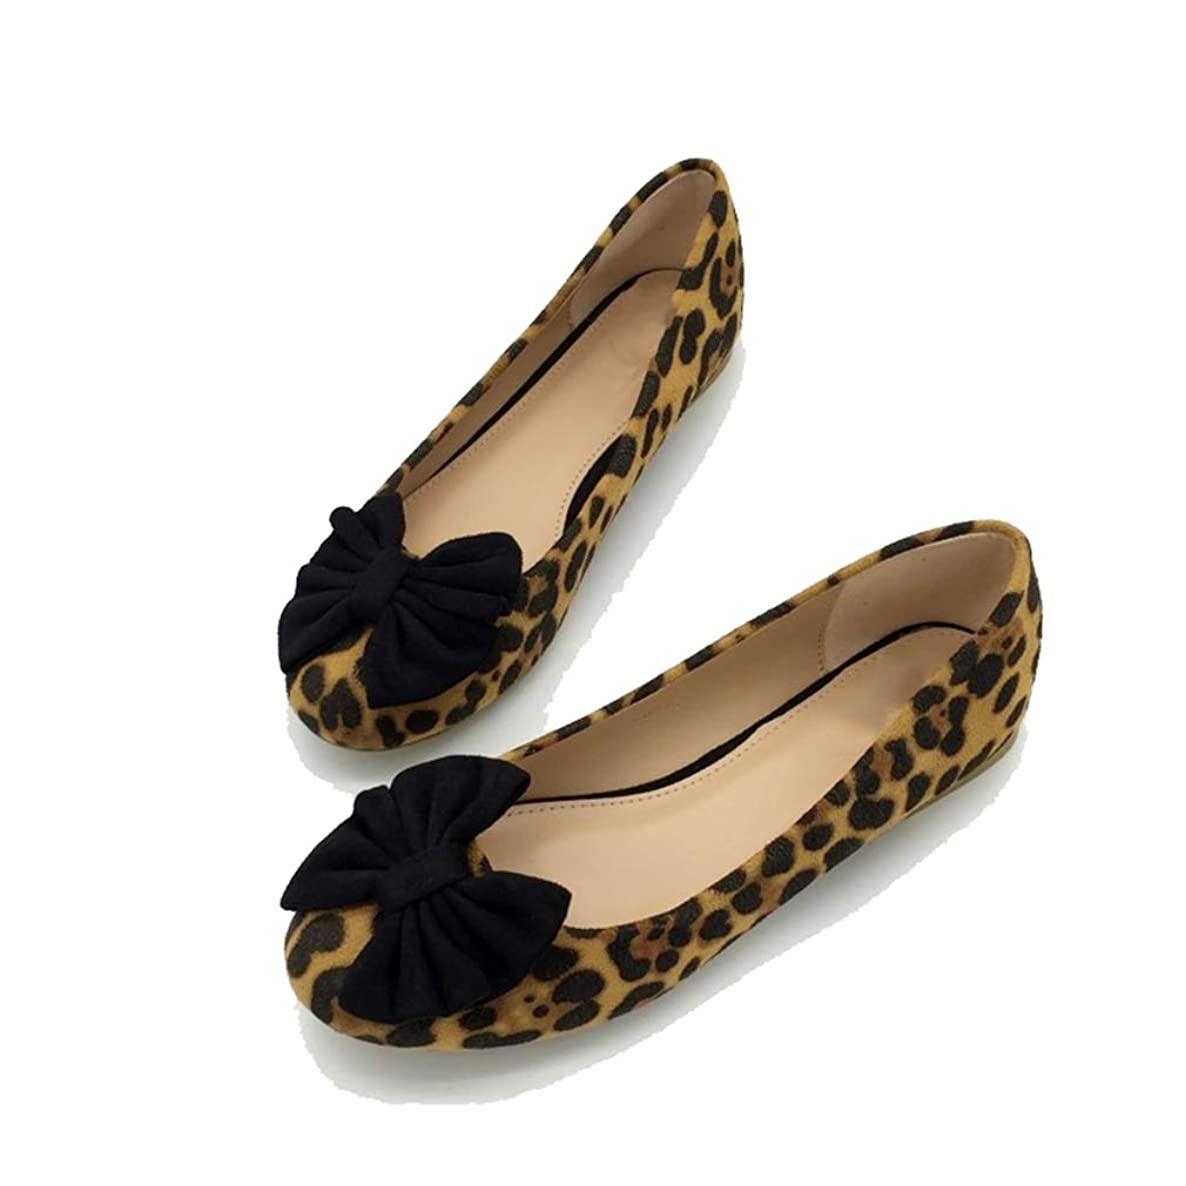 August Jim Women Flats Shoes,Leopard Print Bowtie Round Toe Fashion Casual Shoes